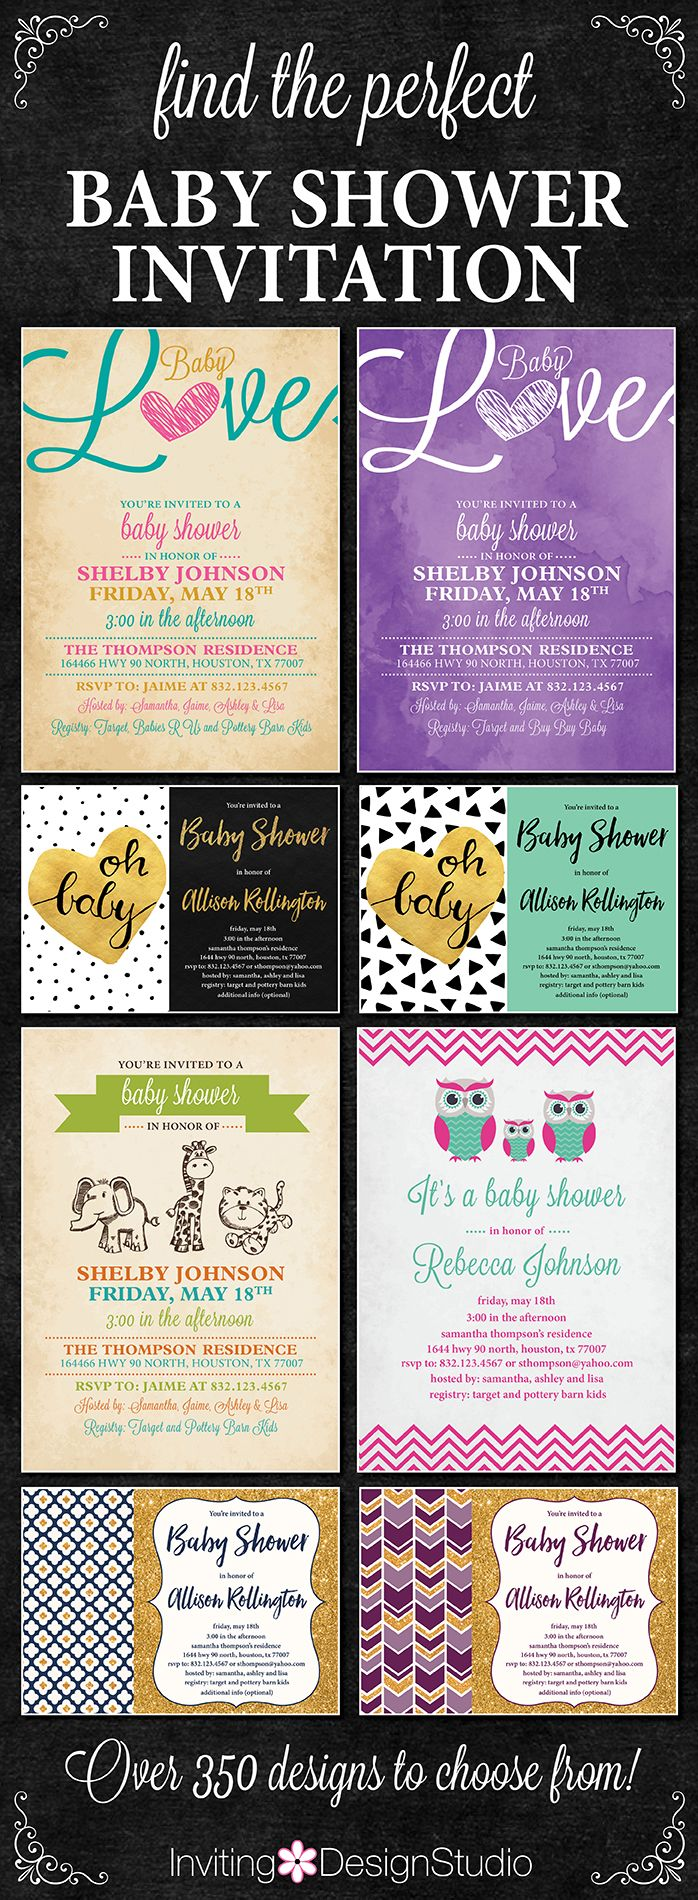 279 best Baby Shower Invitations images on Pinterest | Shower ...